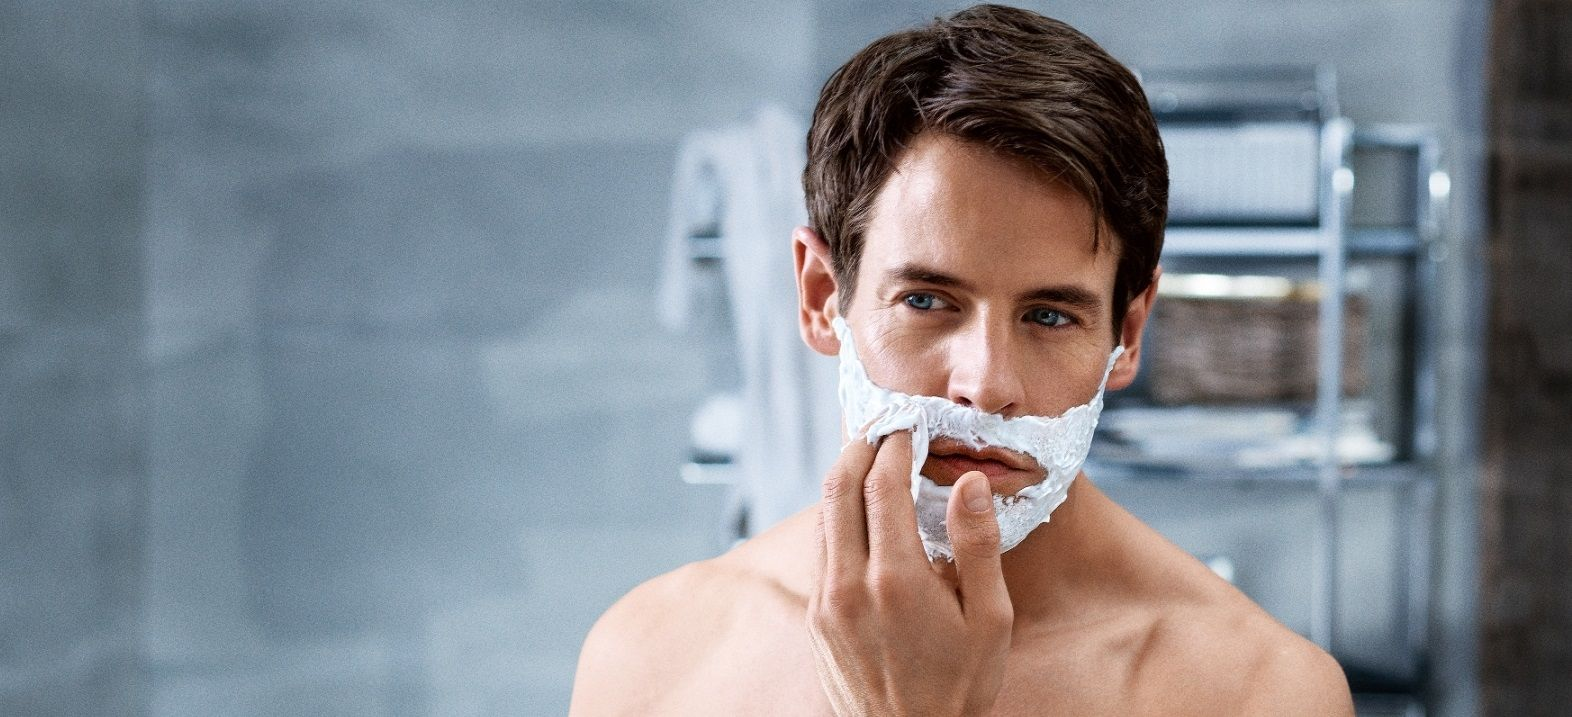 how to shave mustache without shaving cream